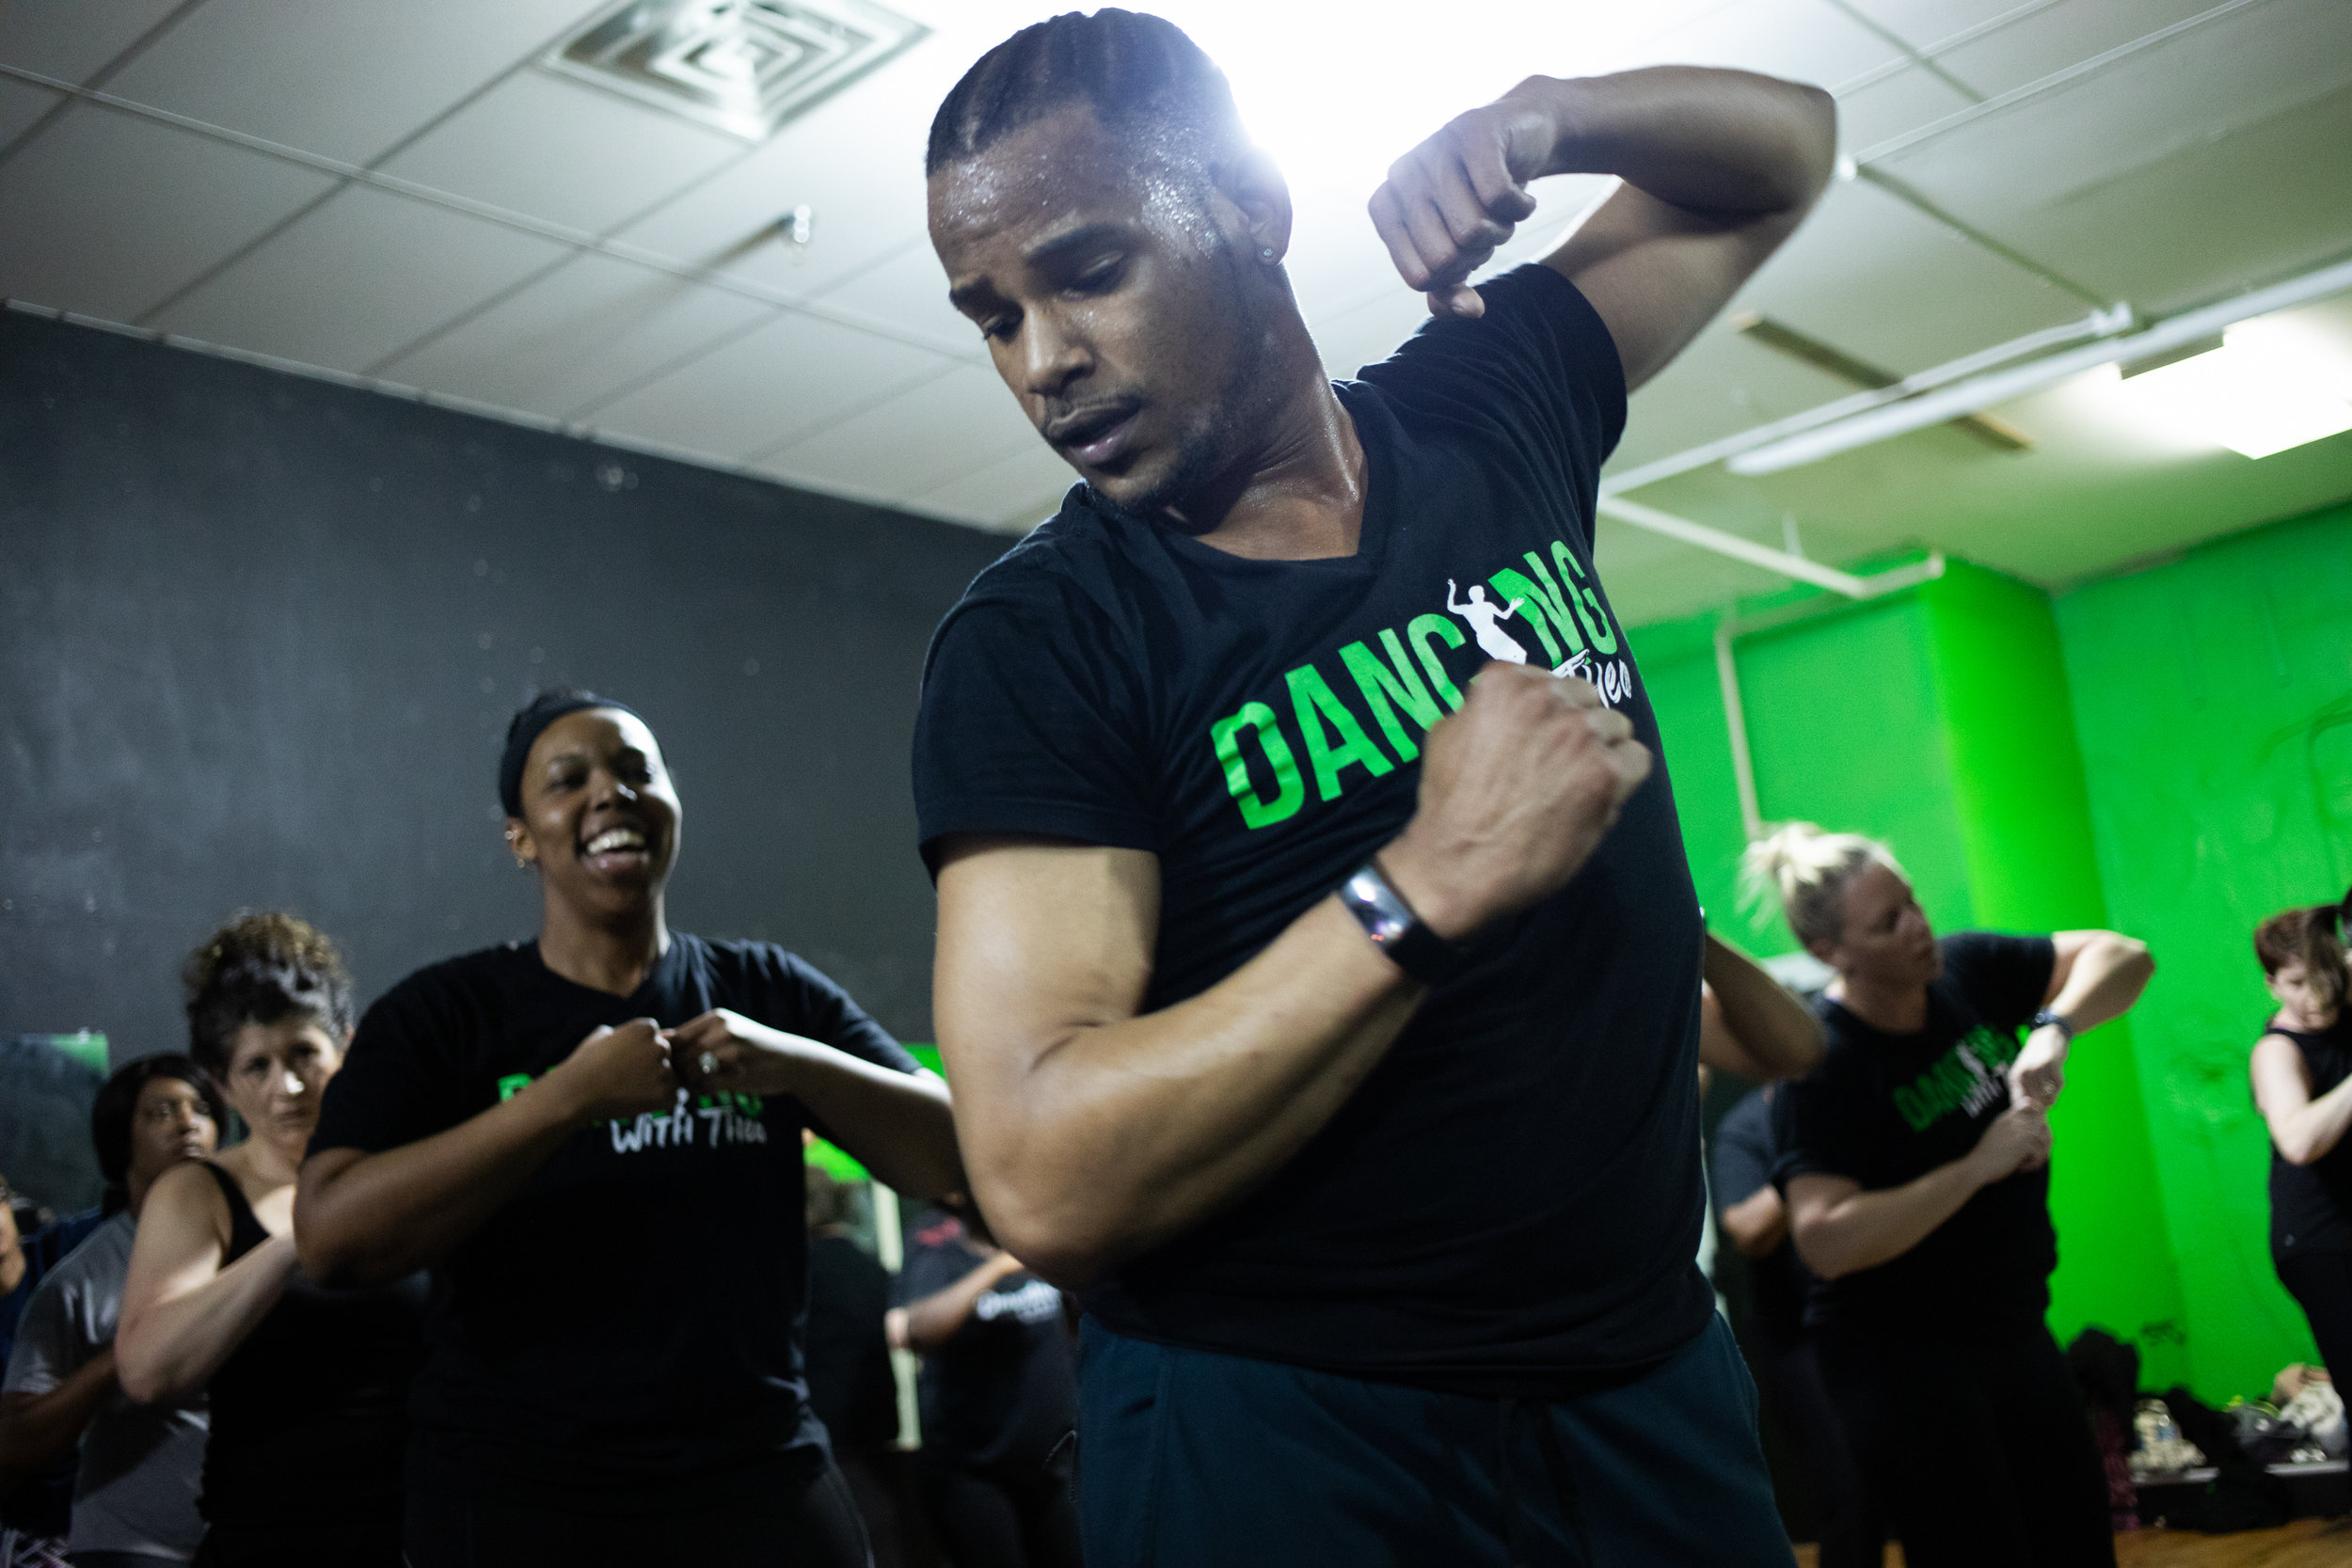 Dance instructor Theo Coates leads a cardio dance class tonight on March 11, 2019 at 811 Main St. in Downtown Lynchburg.